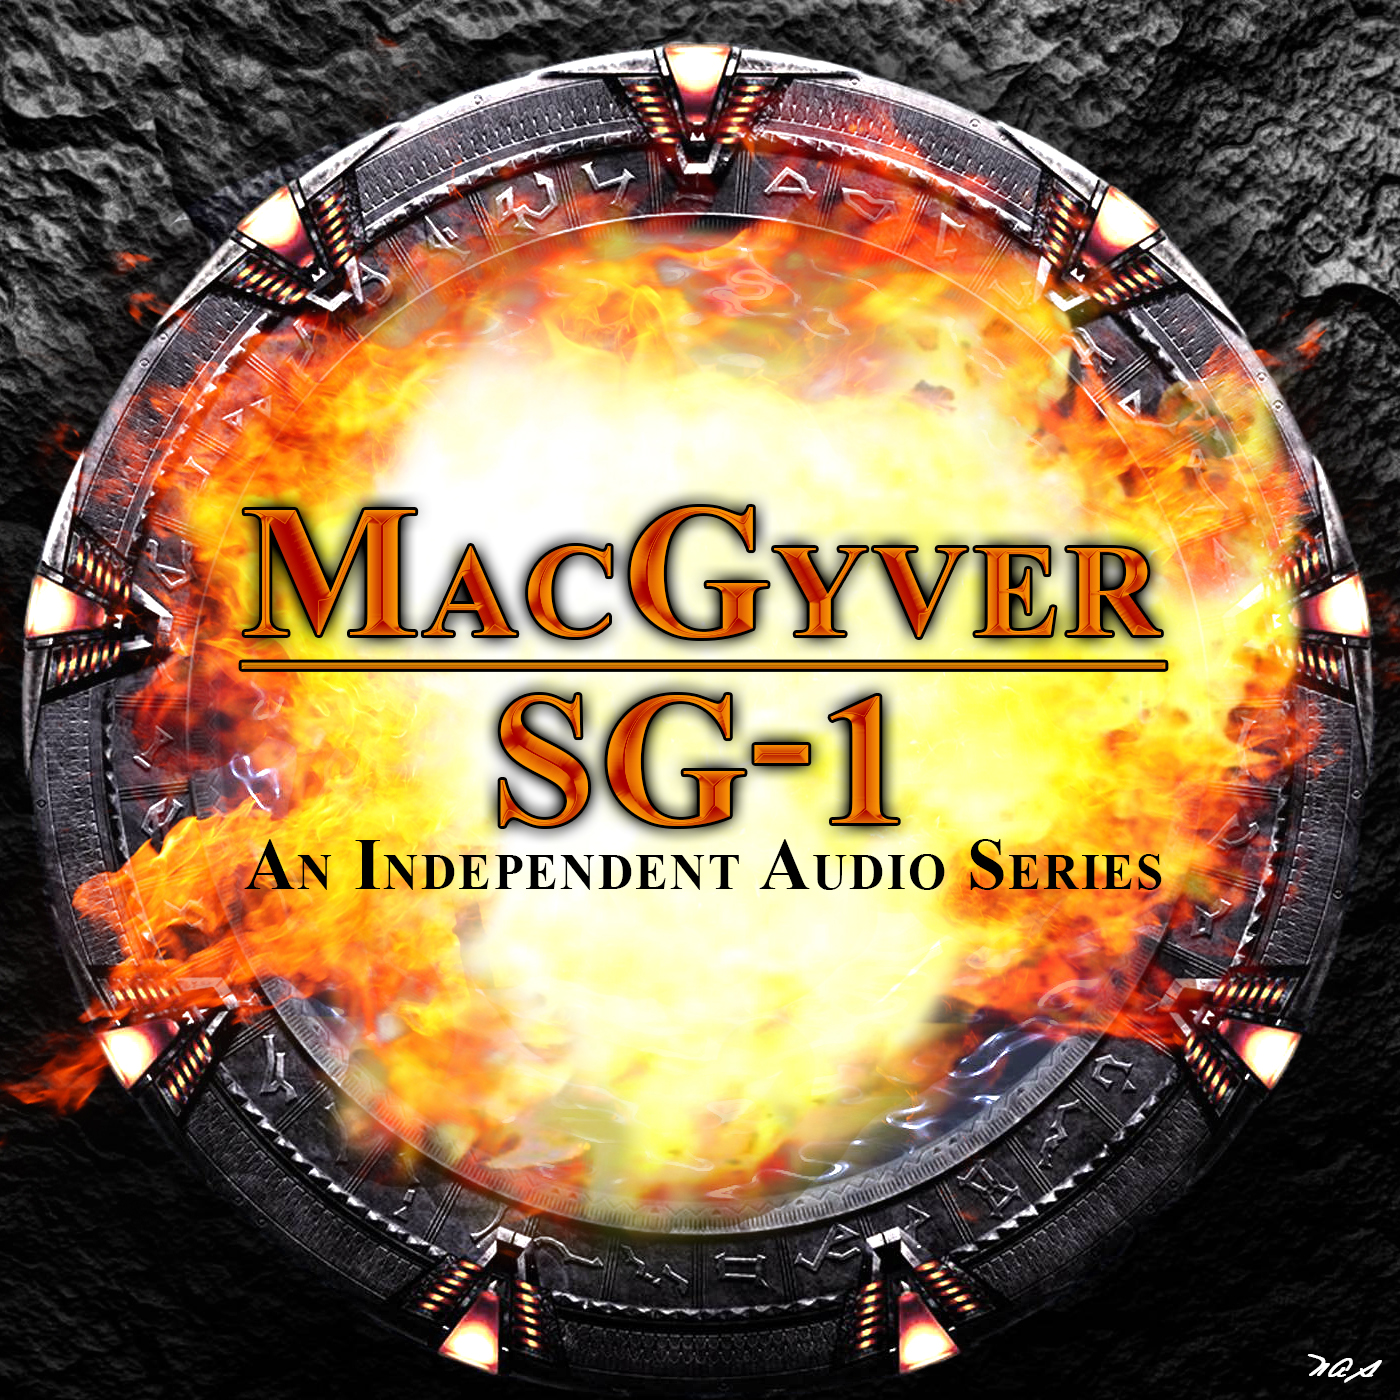 MacGyver/SG-1 Audio Series Podcast